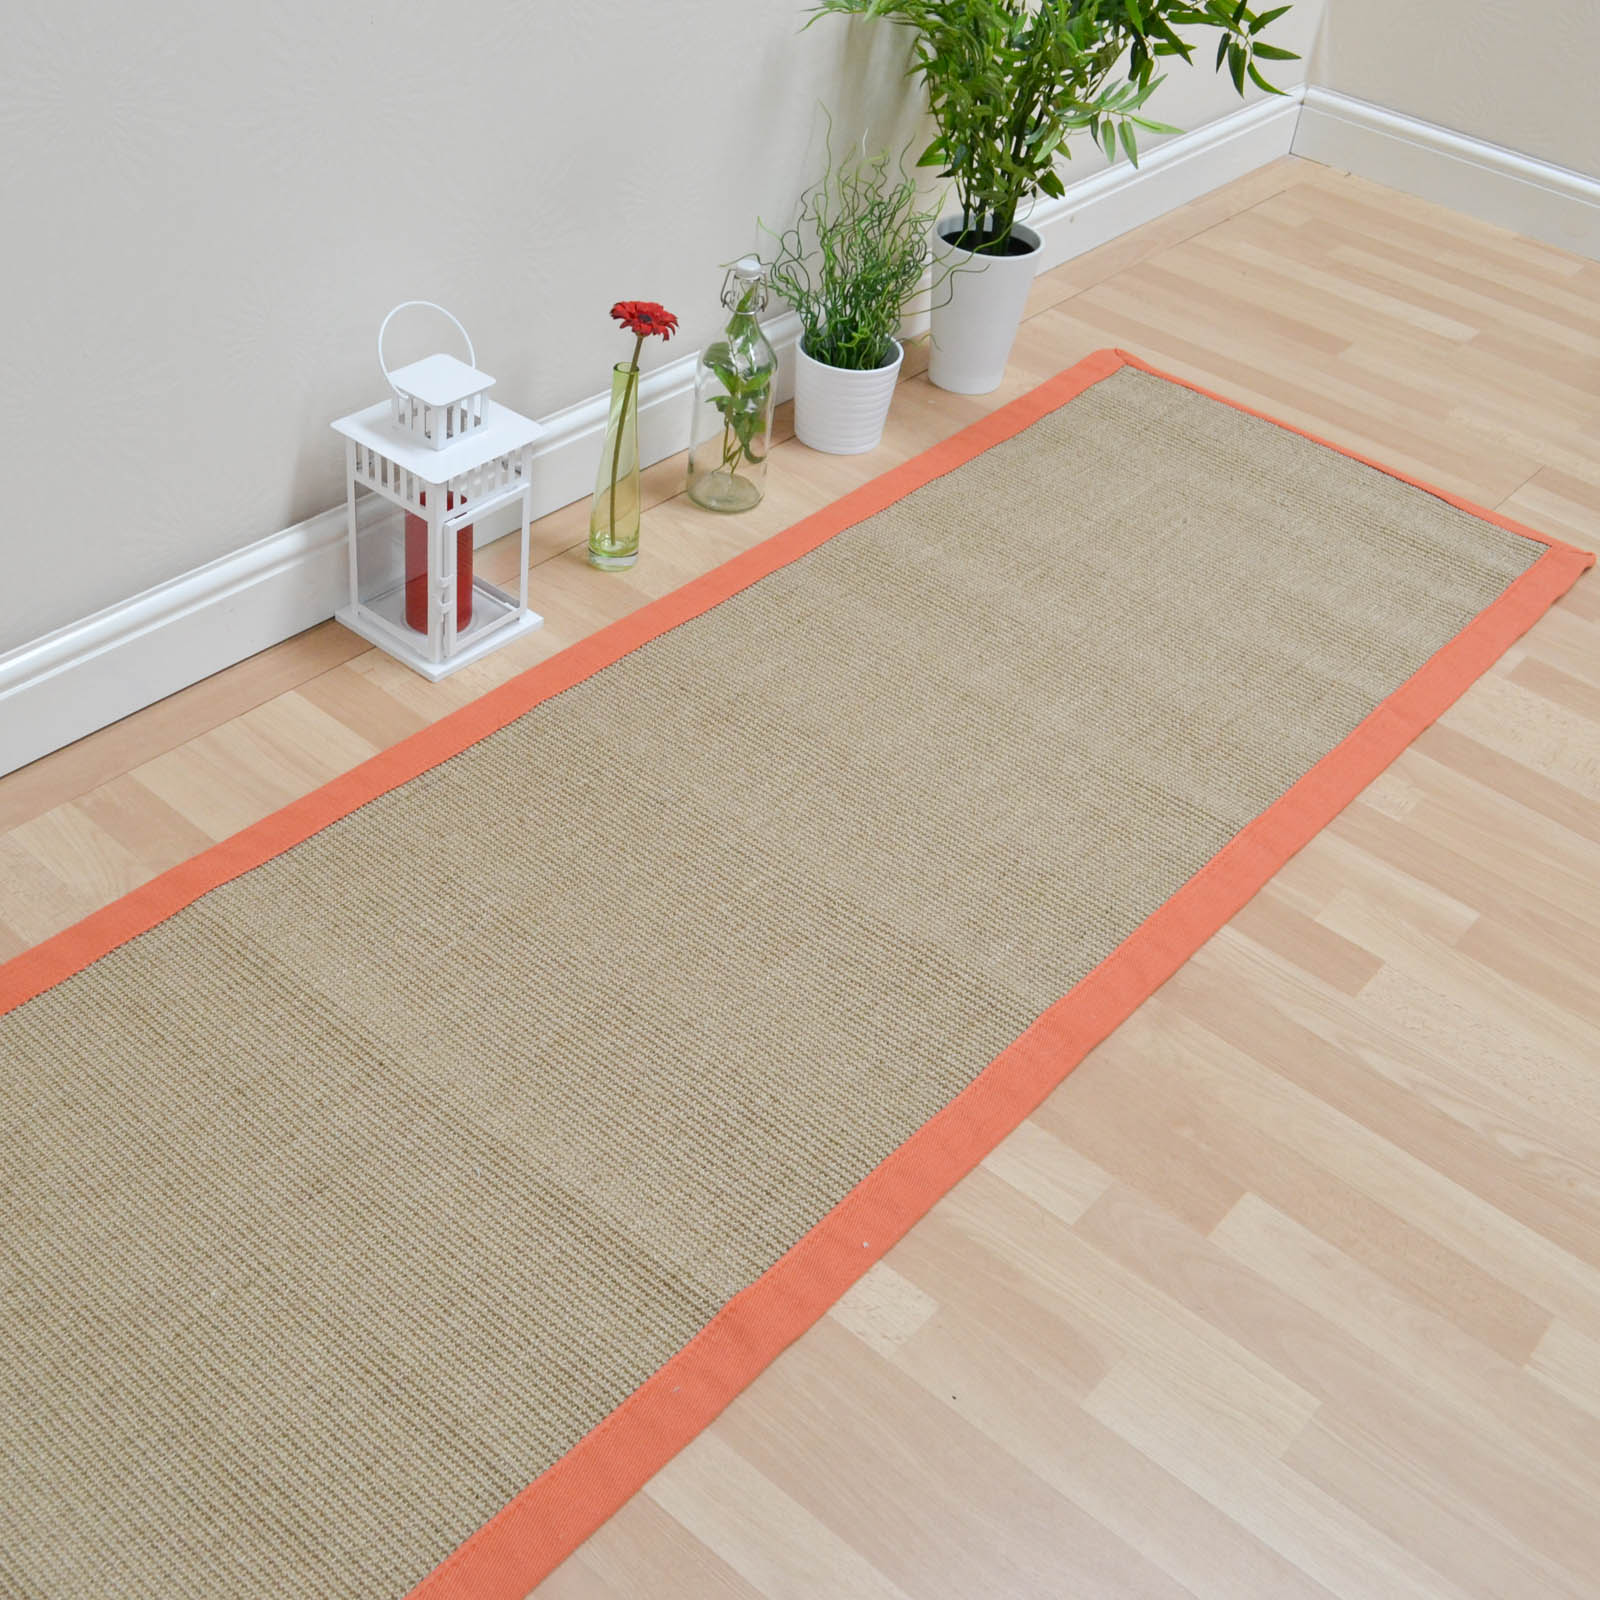 Washable Hall Rugs: Sisal Hallway Runners Online With Huge Savings